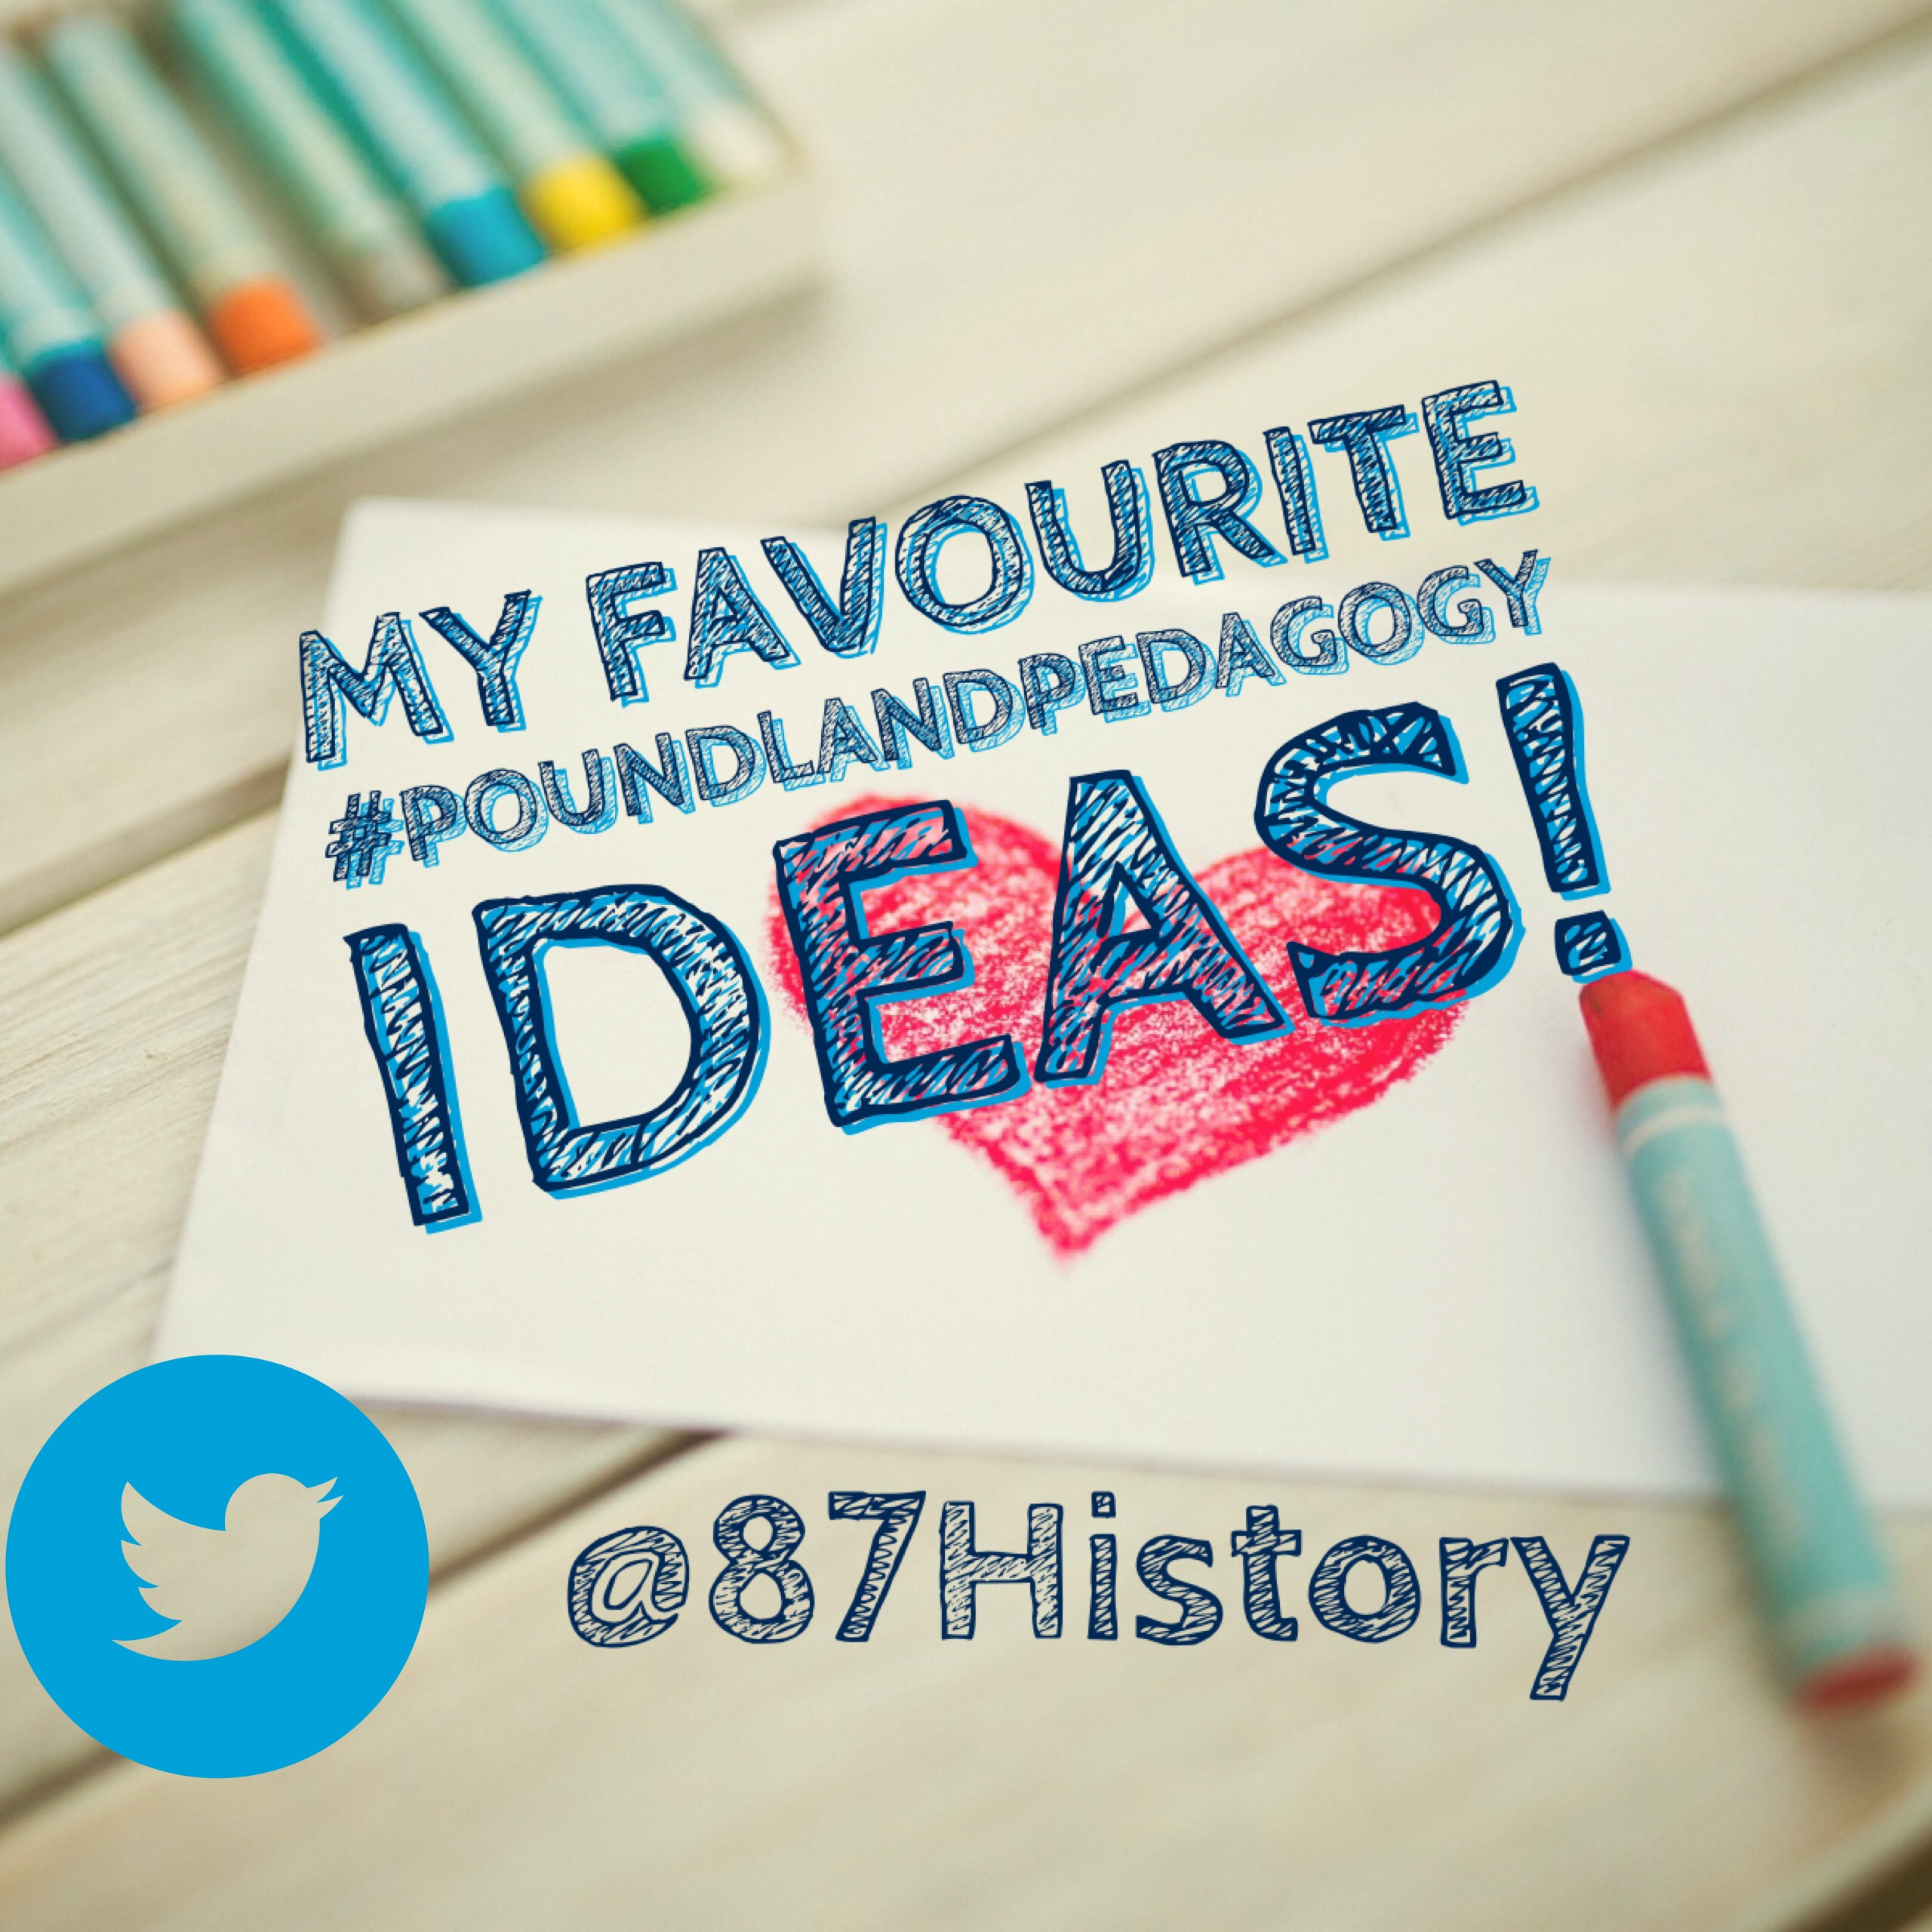 My favourite #Poundland Pedagogy ideas!